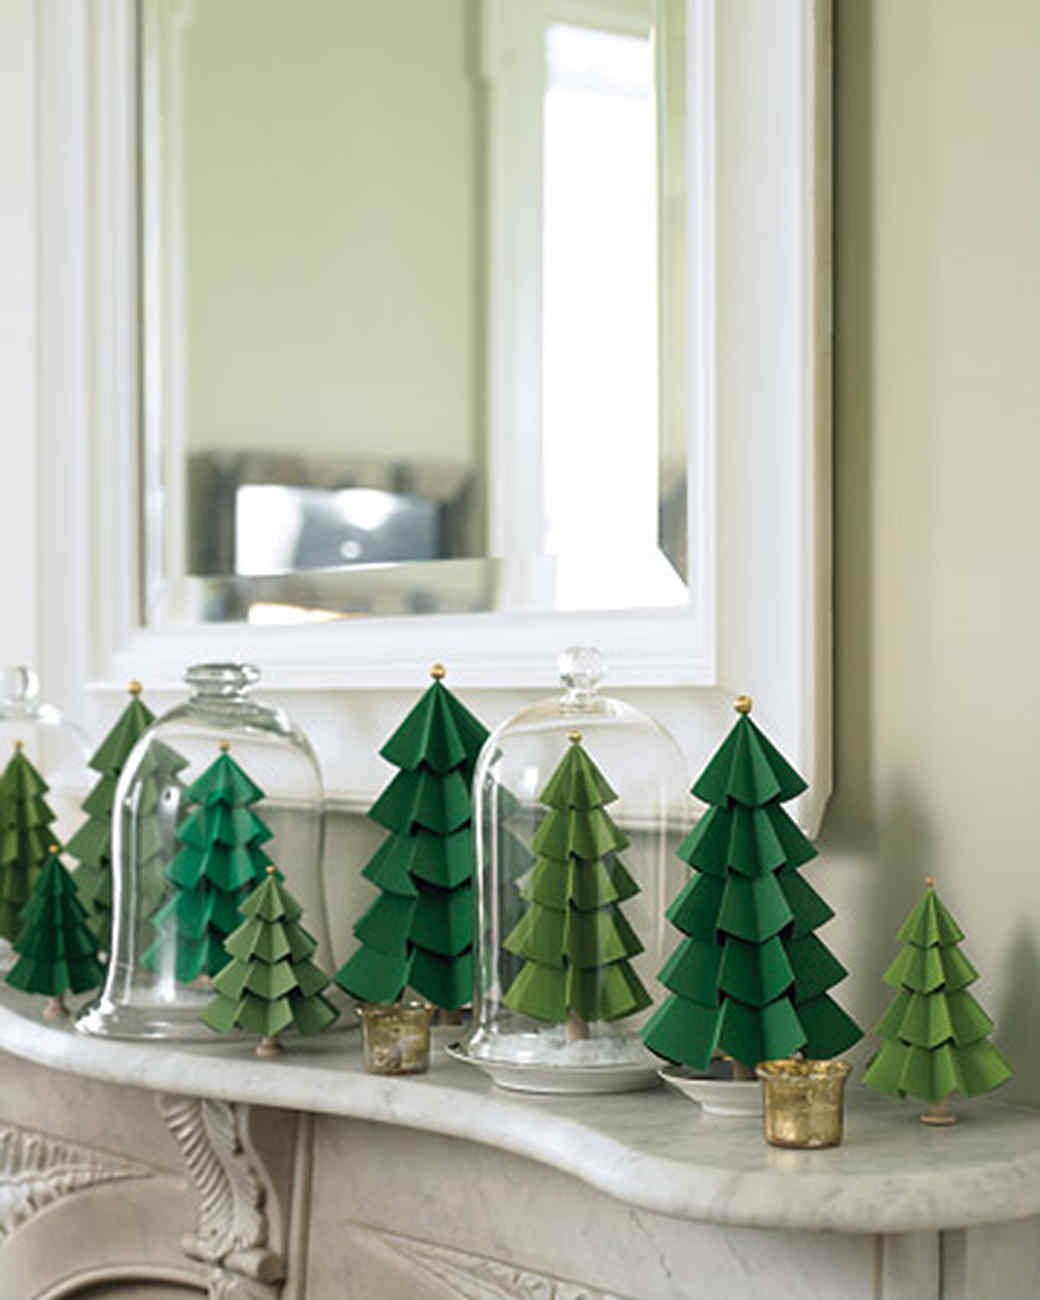 Deck the Halls: DIY Decorations for Christmas | Martha Stewart